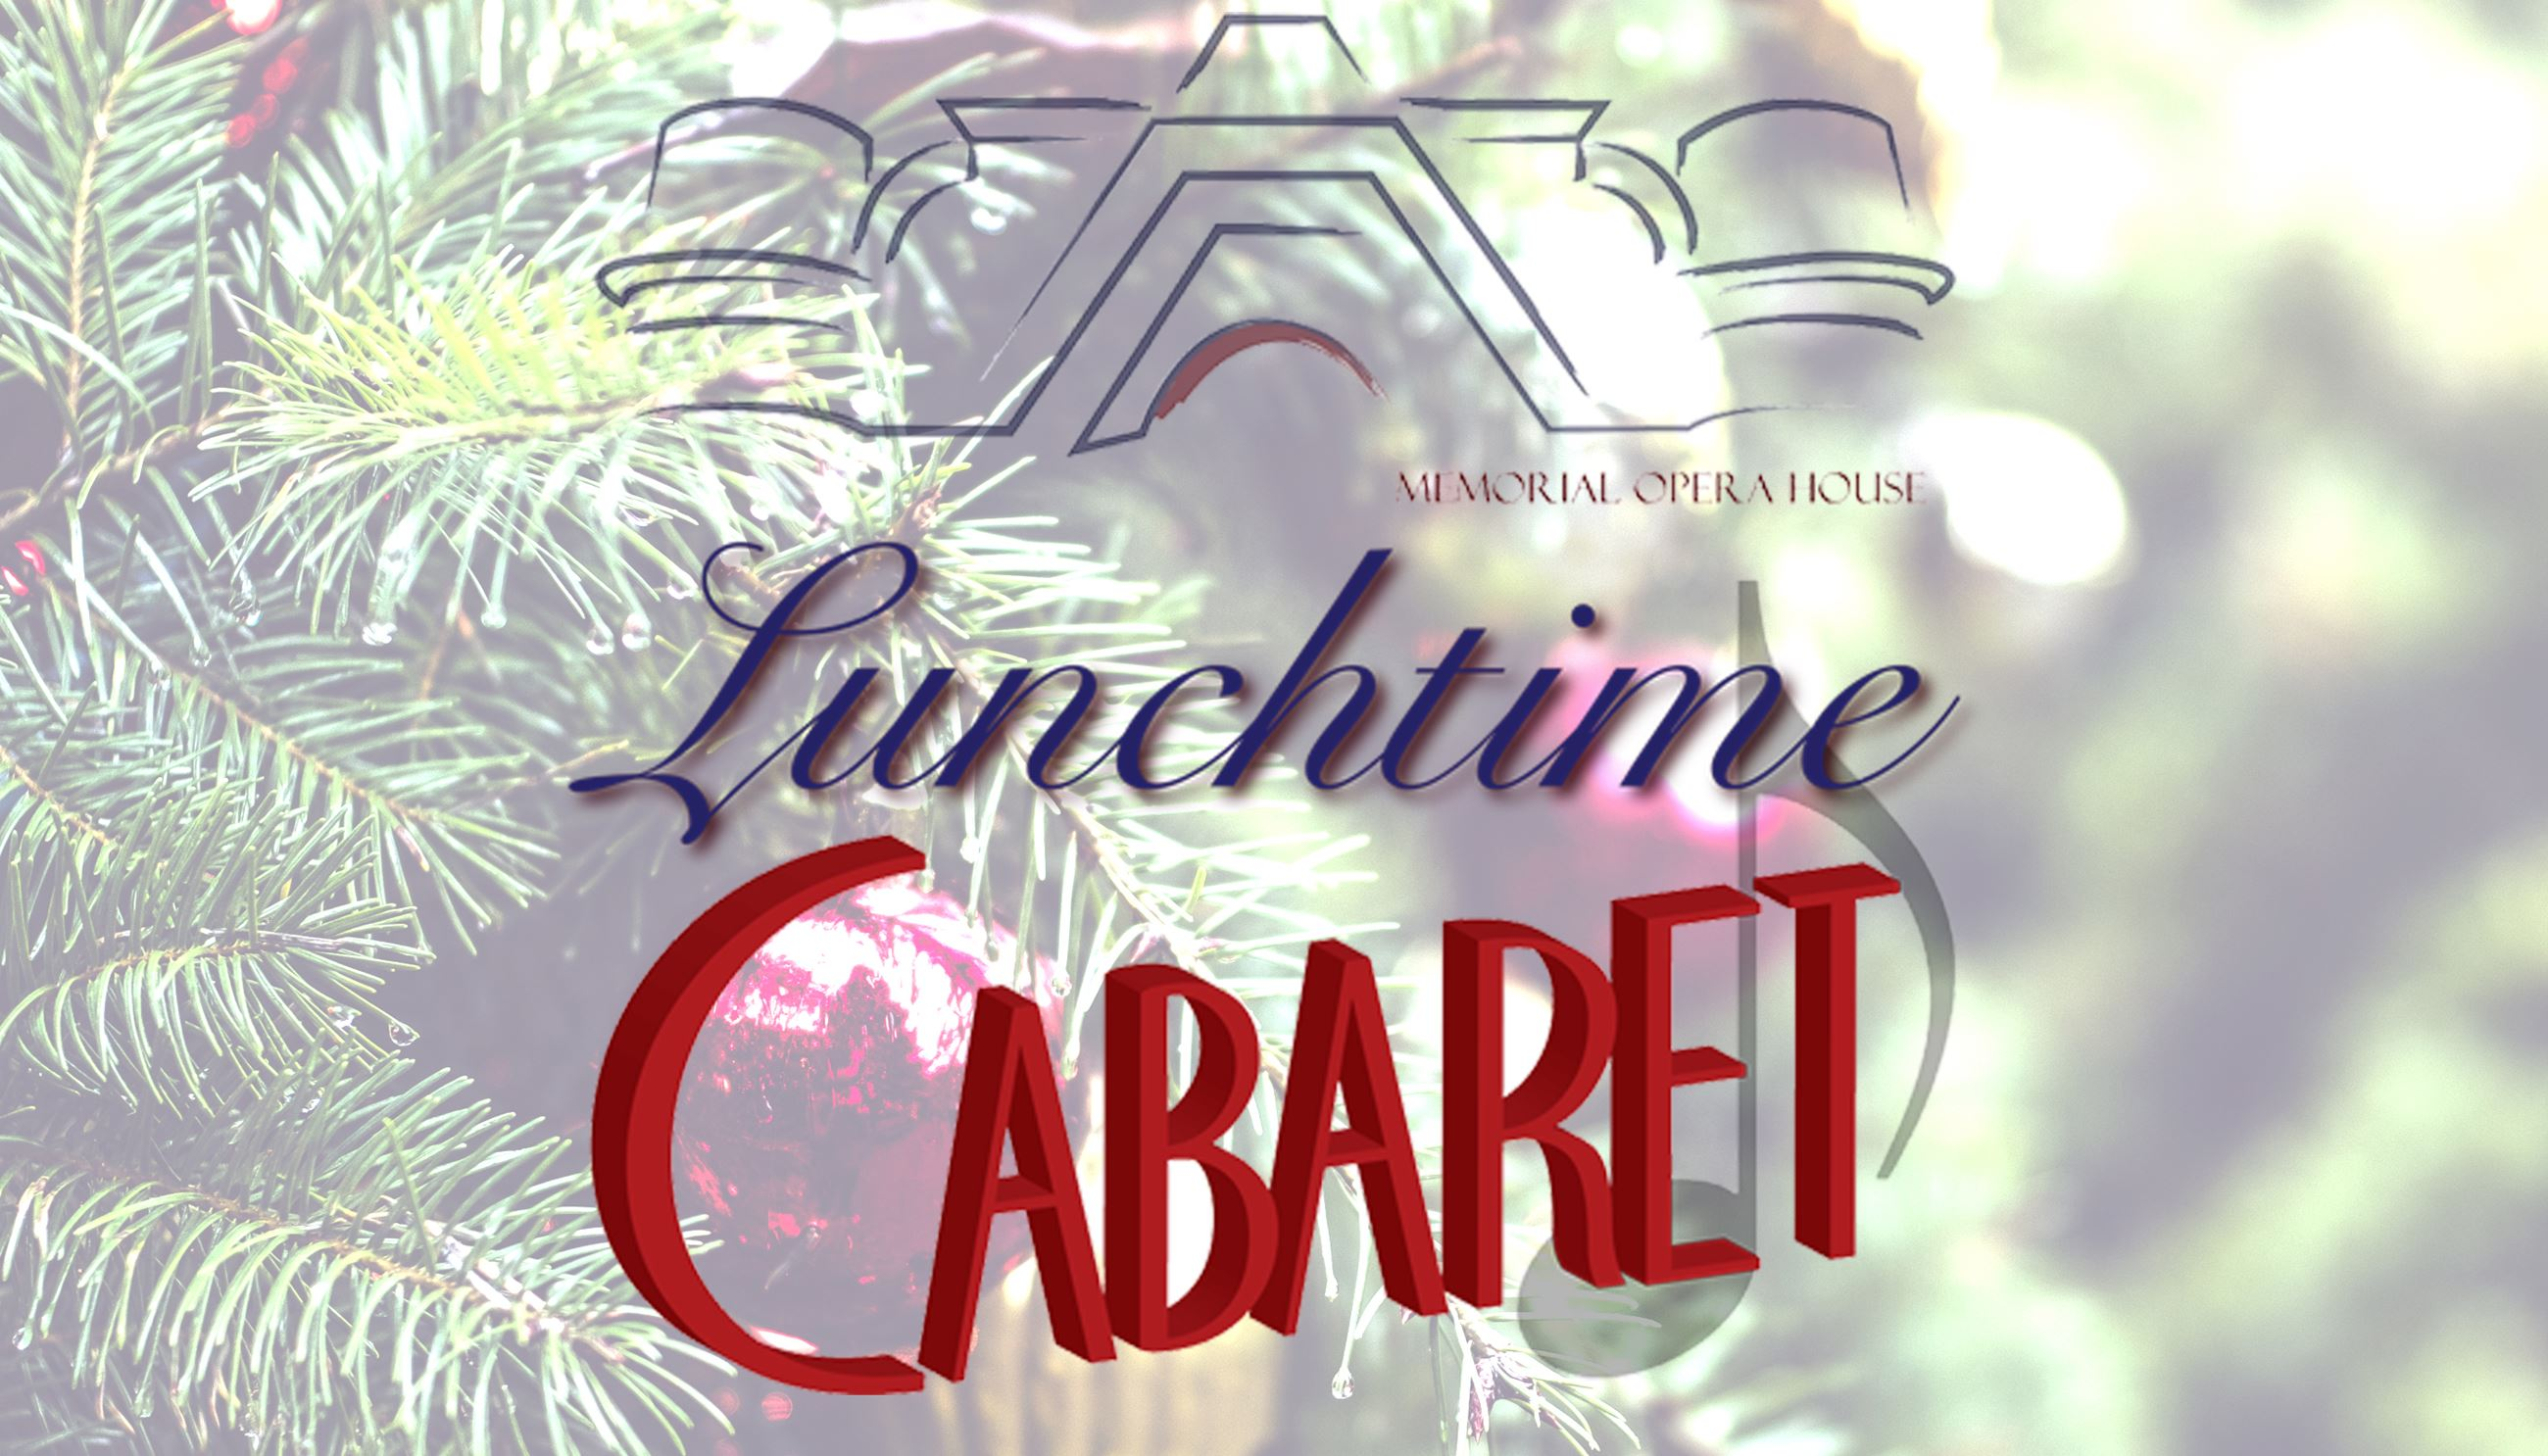 Christmastime At The Opera House Lunchtime Cabaret Event Poster